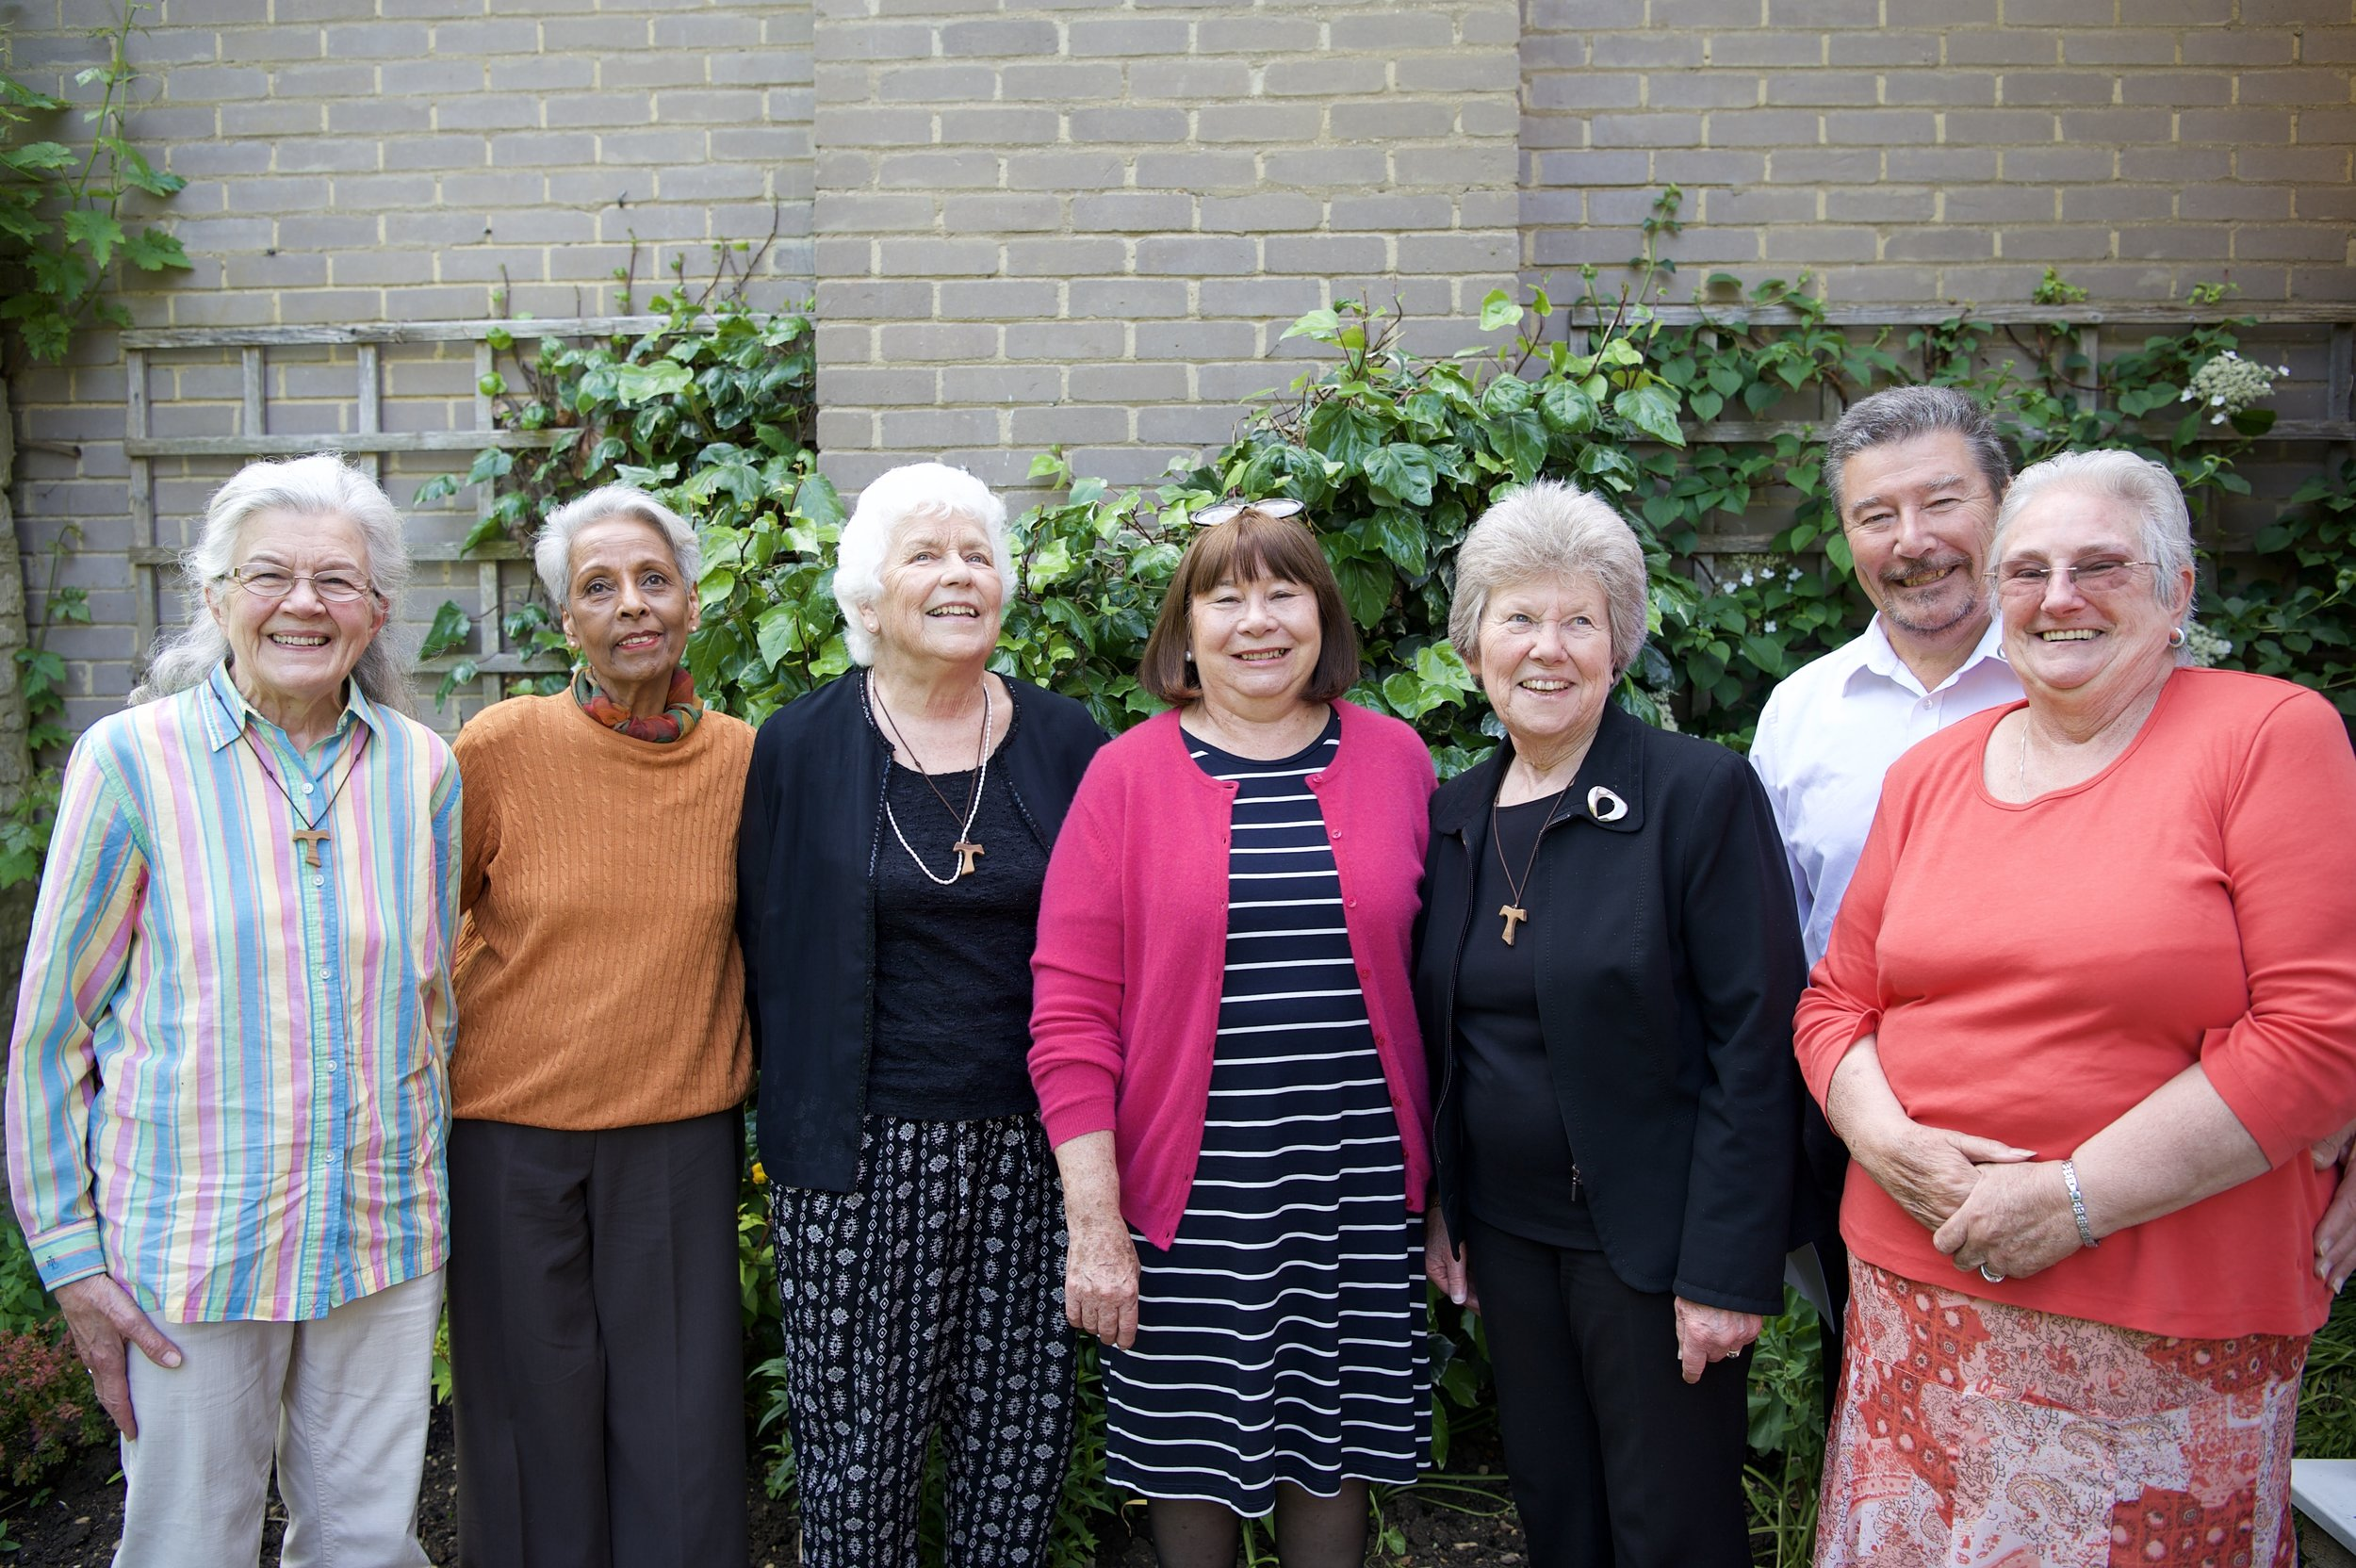 Members of Woodstock's Pastoral Team